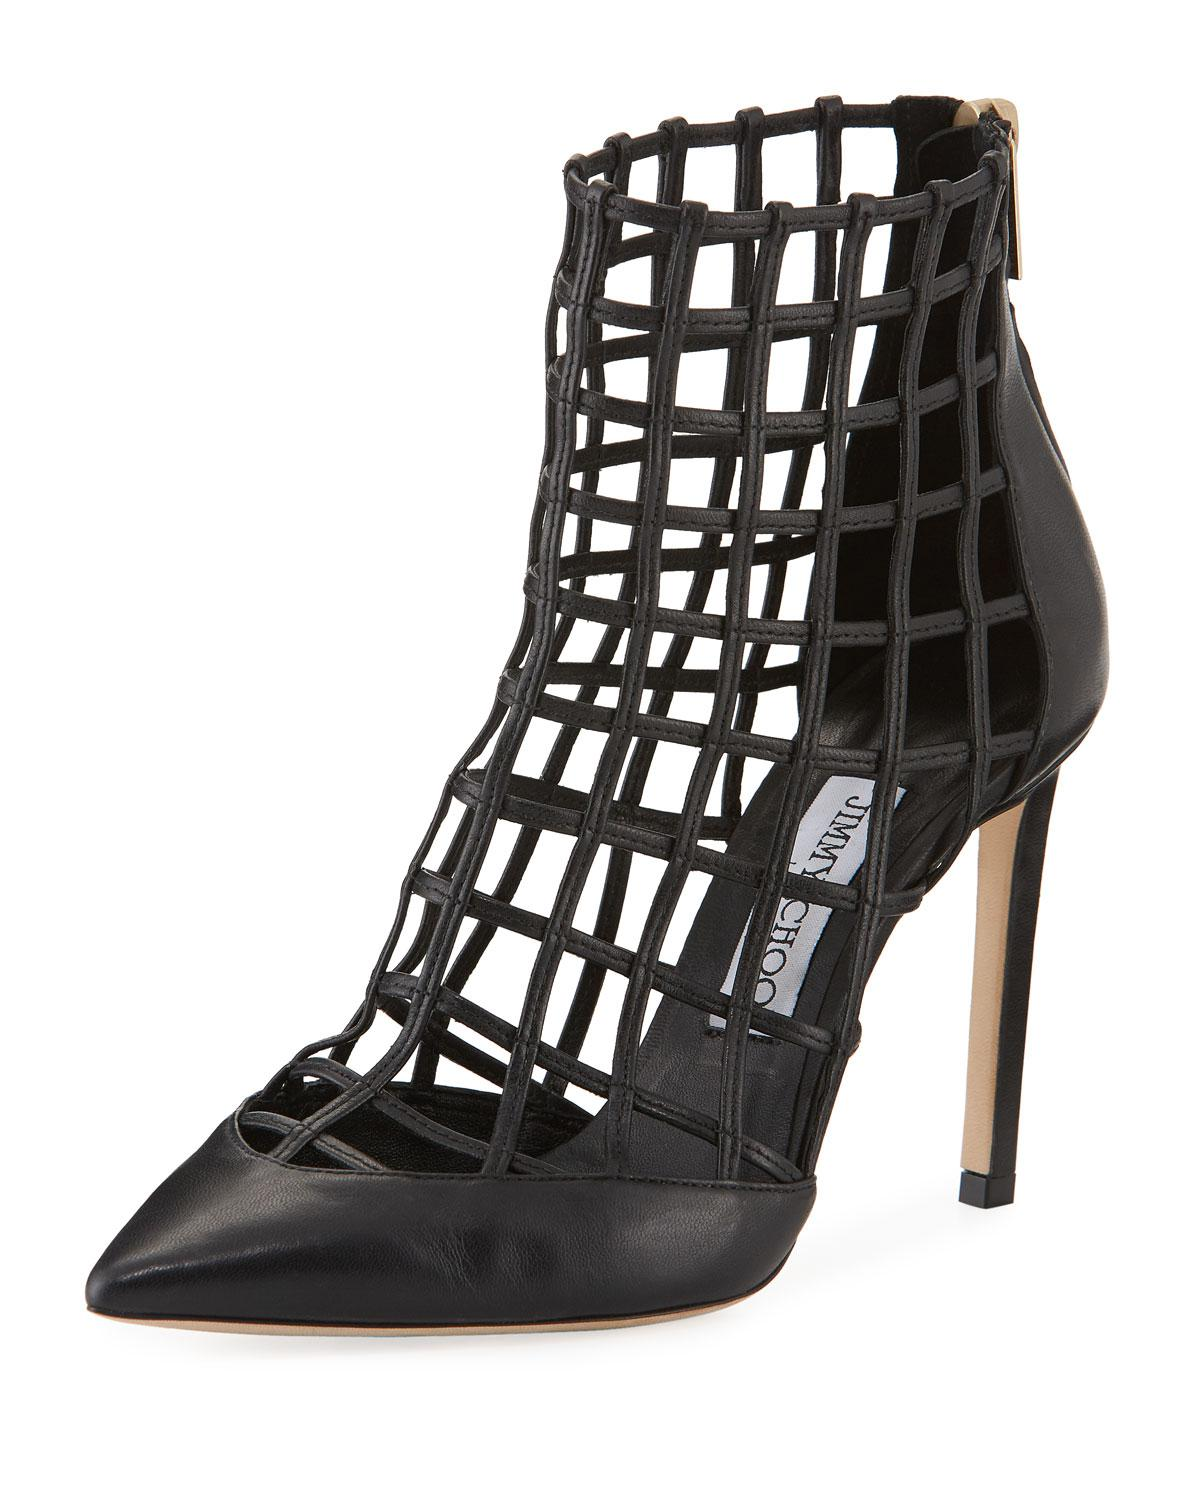 Jimmy choo Ankle Boots SHELDON 100 nappa leather